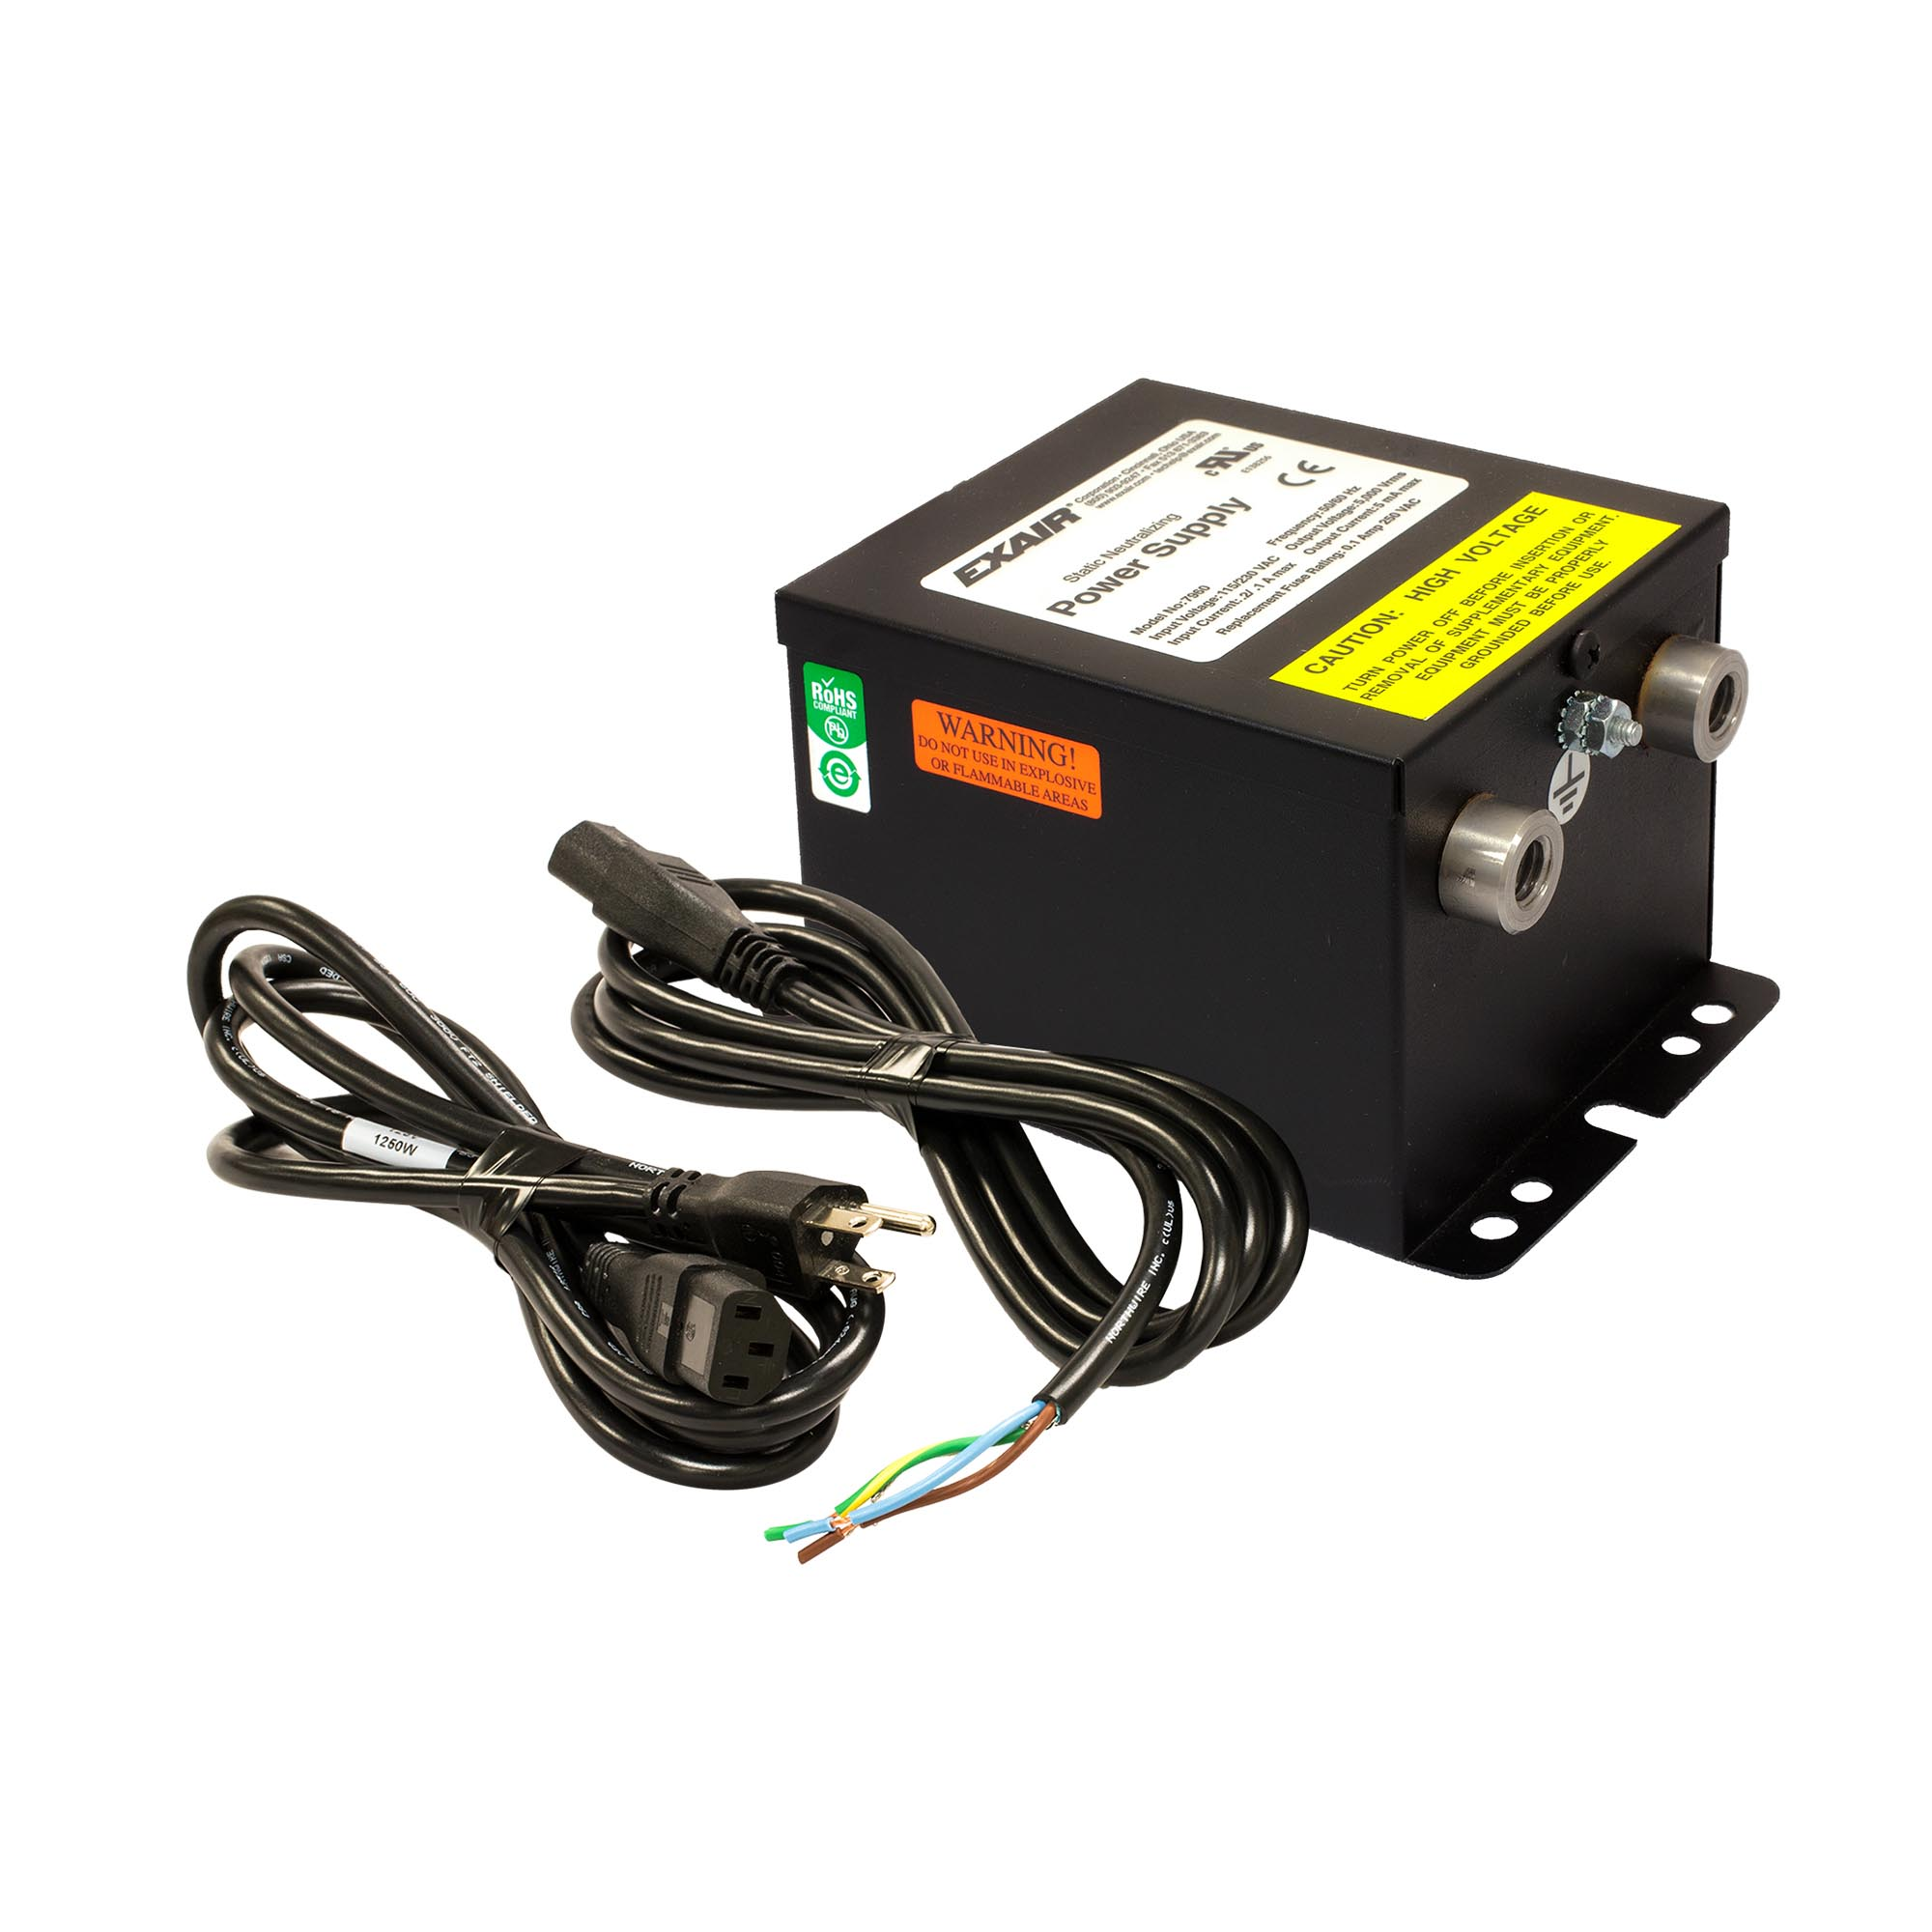 Model 7960 Gen4 Selectable Voltage Power Supply allows you to choose 115V or 230V input